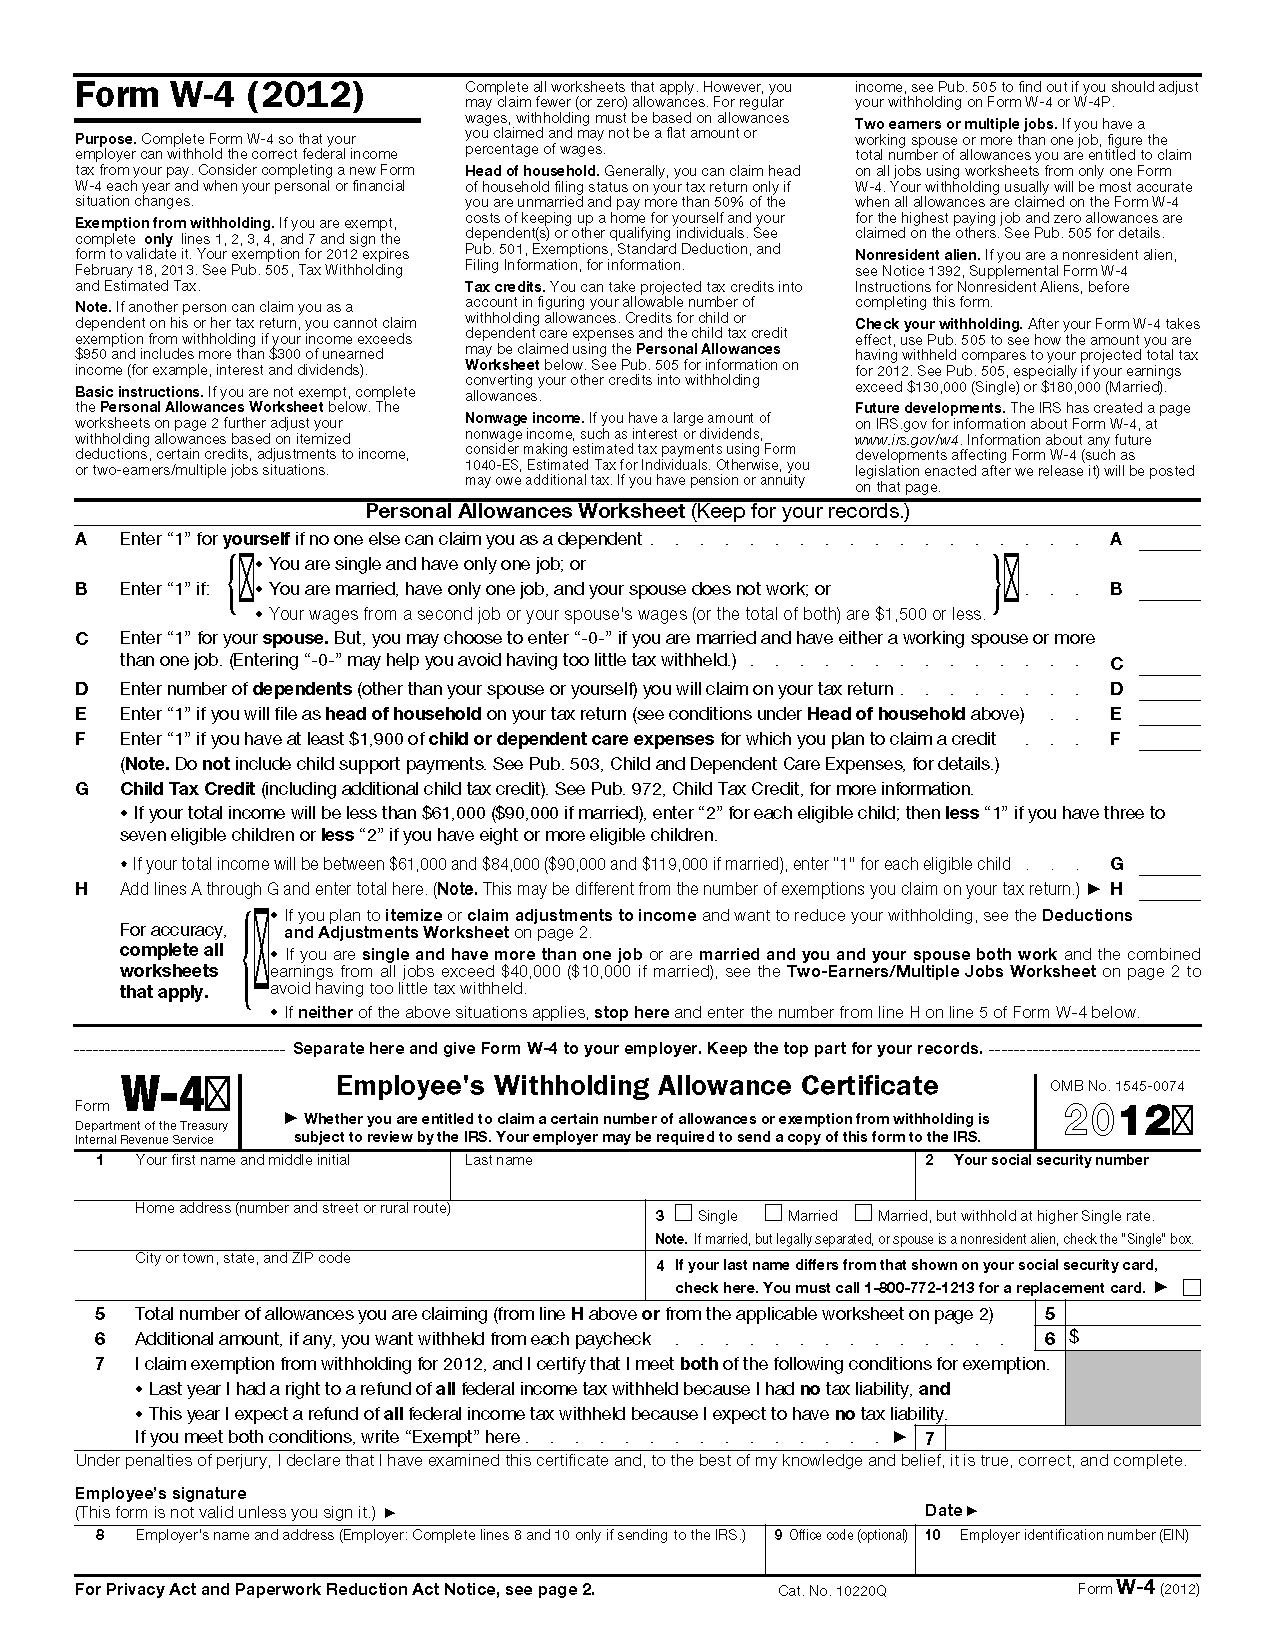 Form W4 Employees Withholding Allowance Certificate – W4 Worksheet